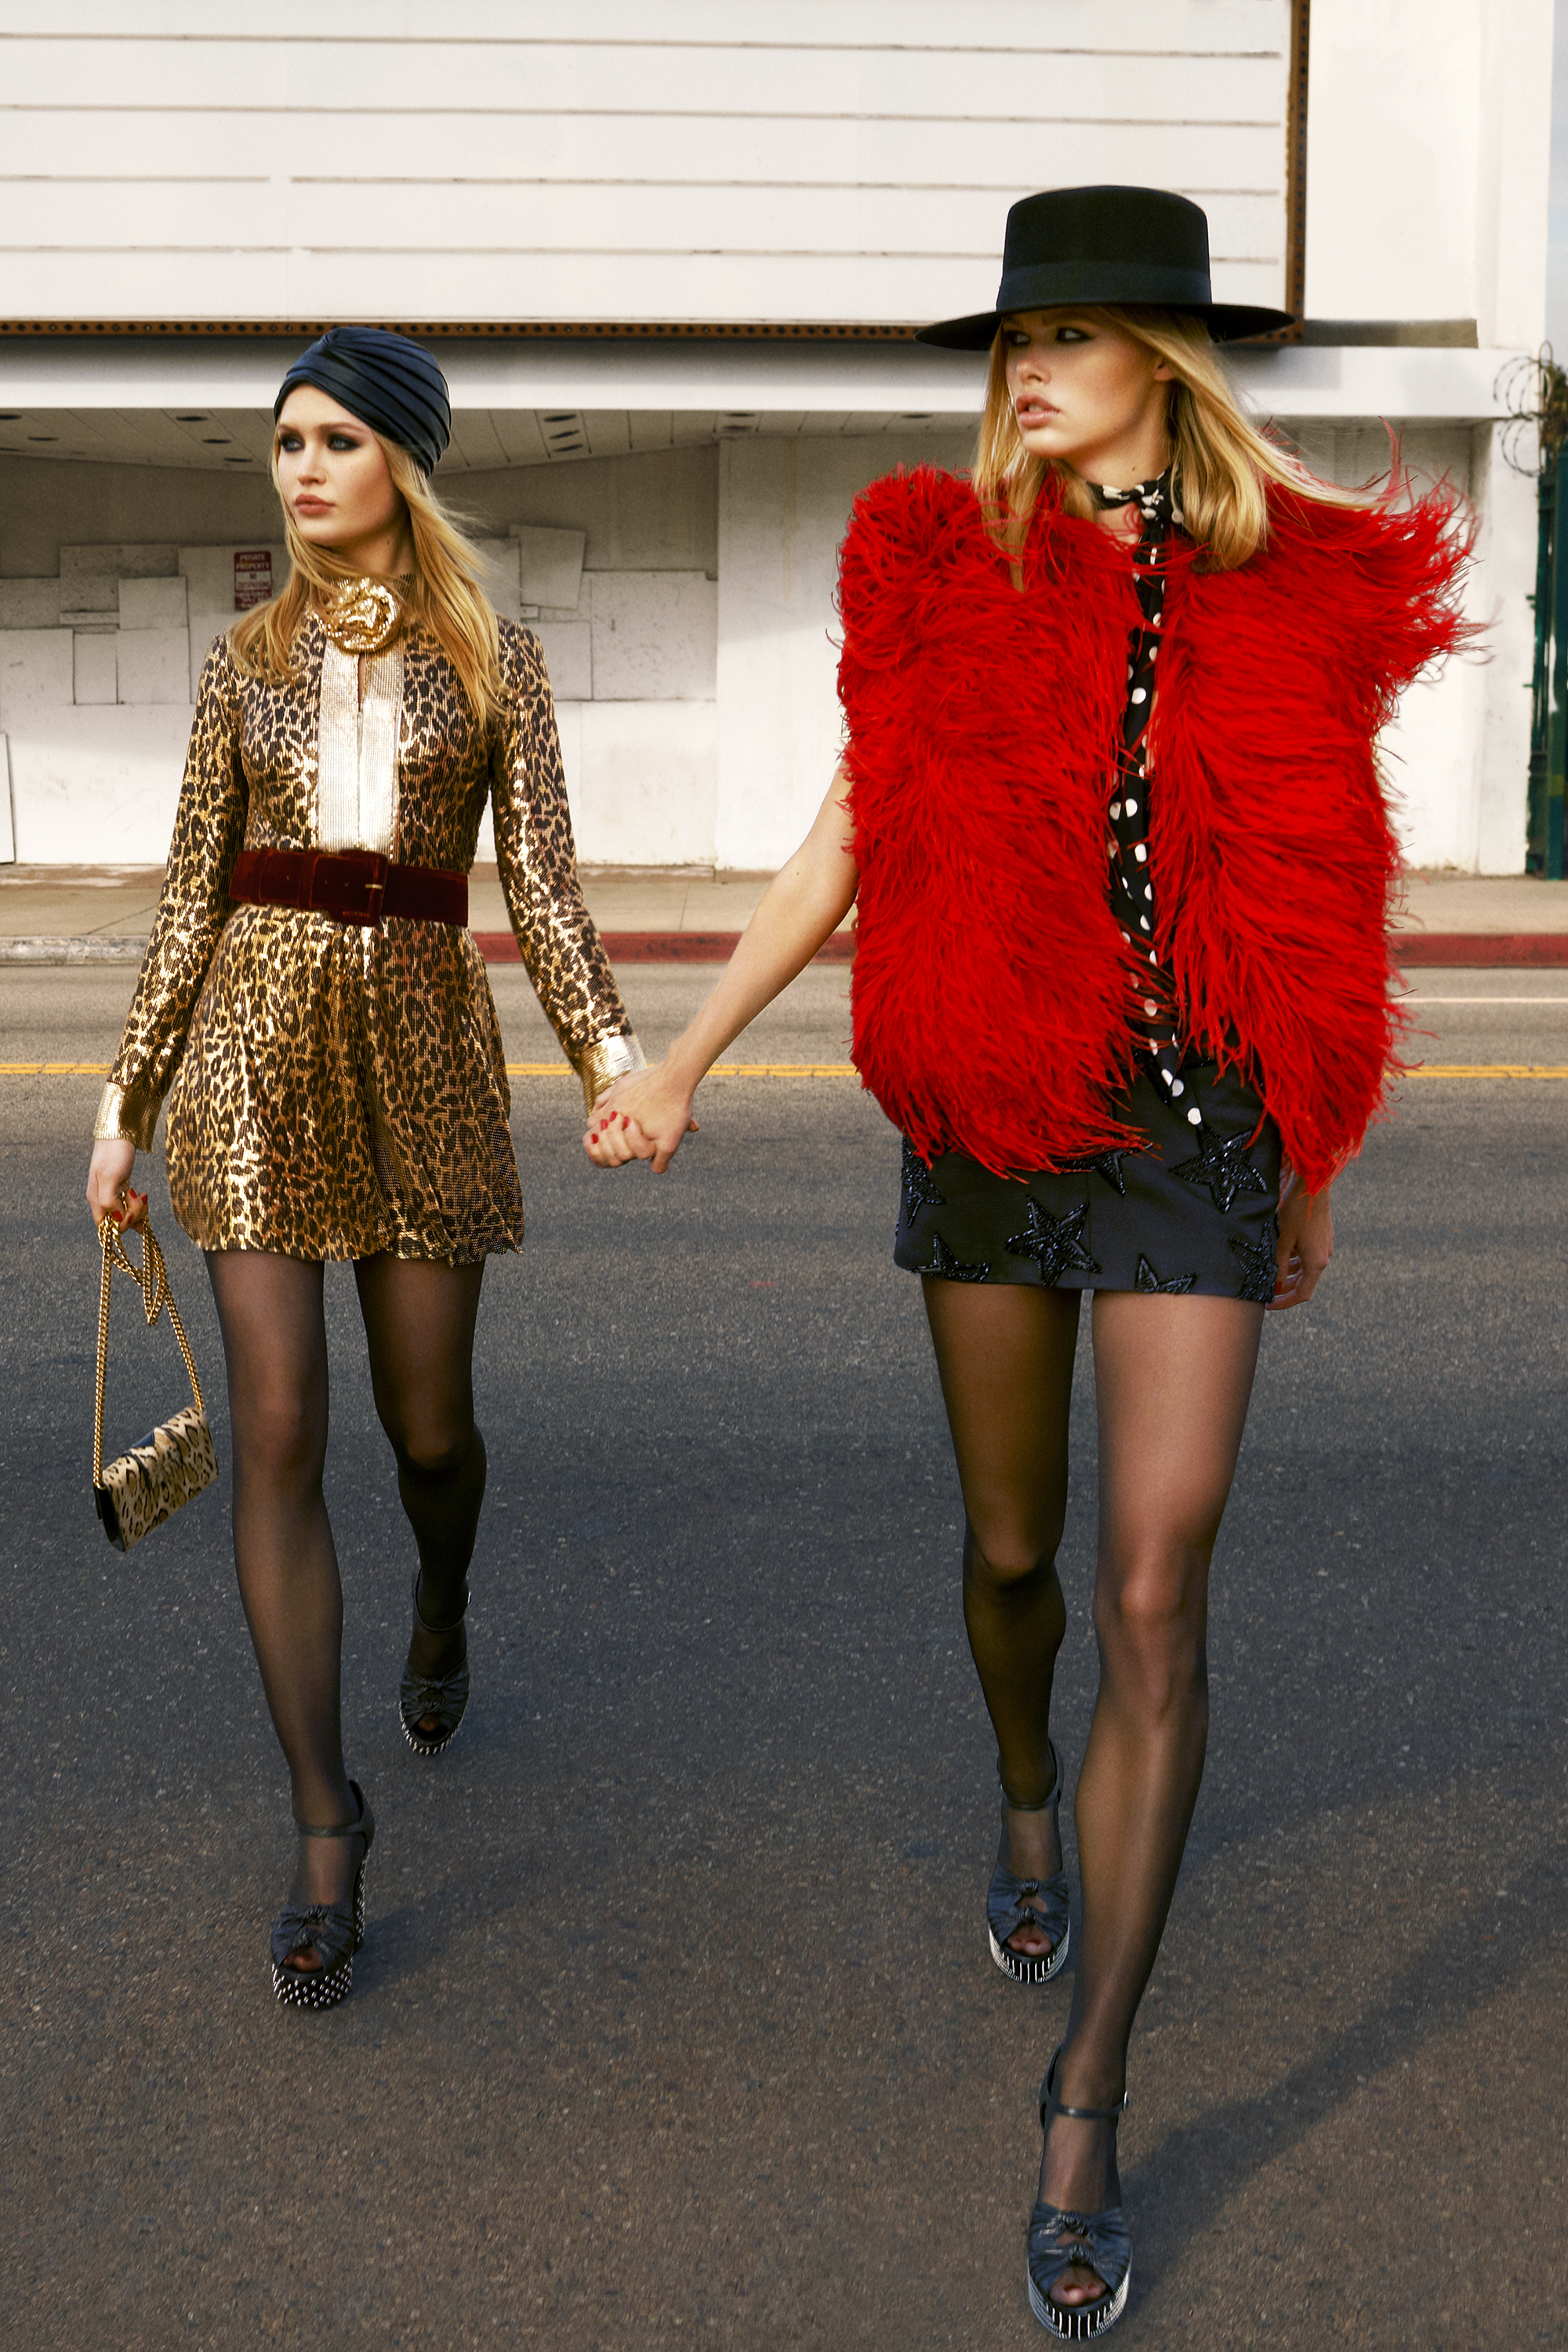 70s Glam-Rock Inspired Fashion Trend for Spring 2015 ...